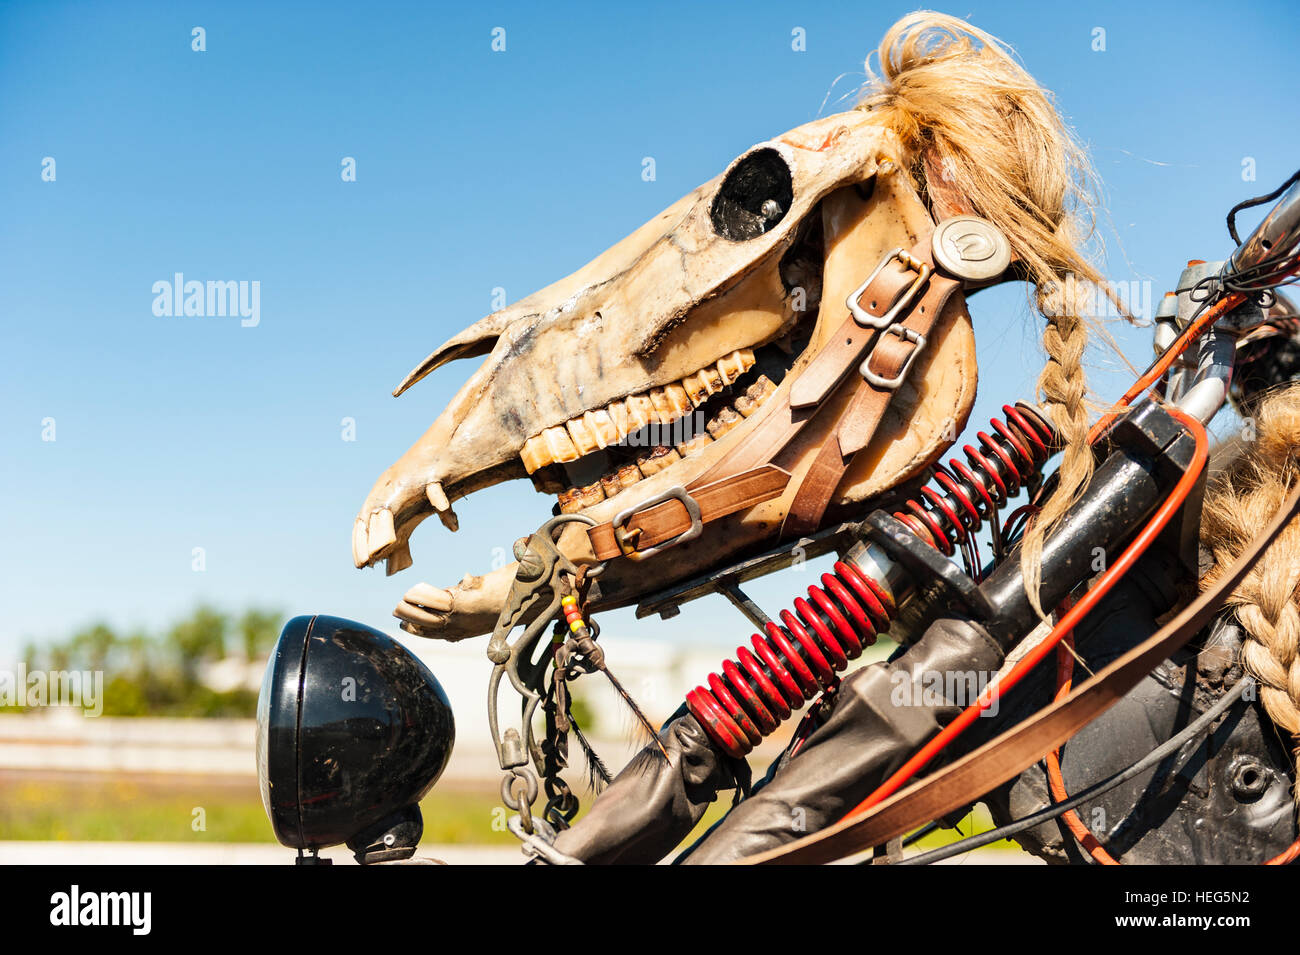 Detail of a horse skull with a wig in the front of a custom-made motorcycle / chopper. - Stock Image